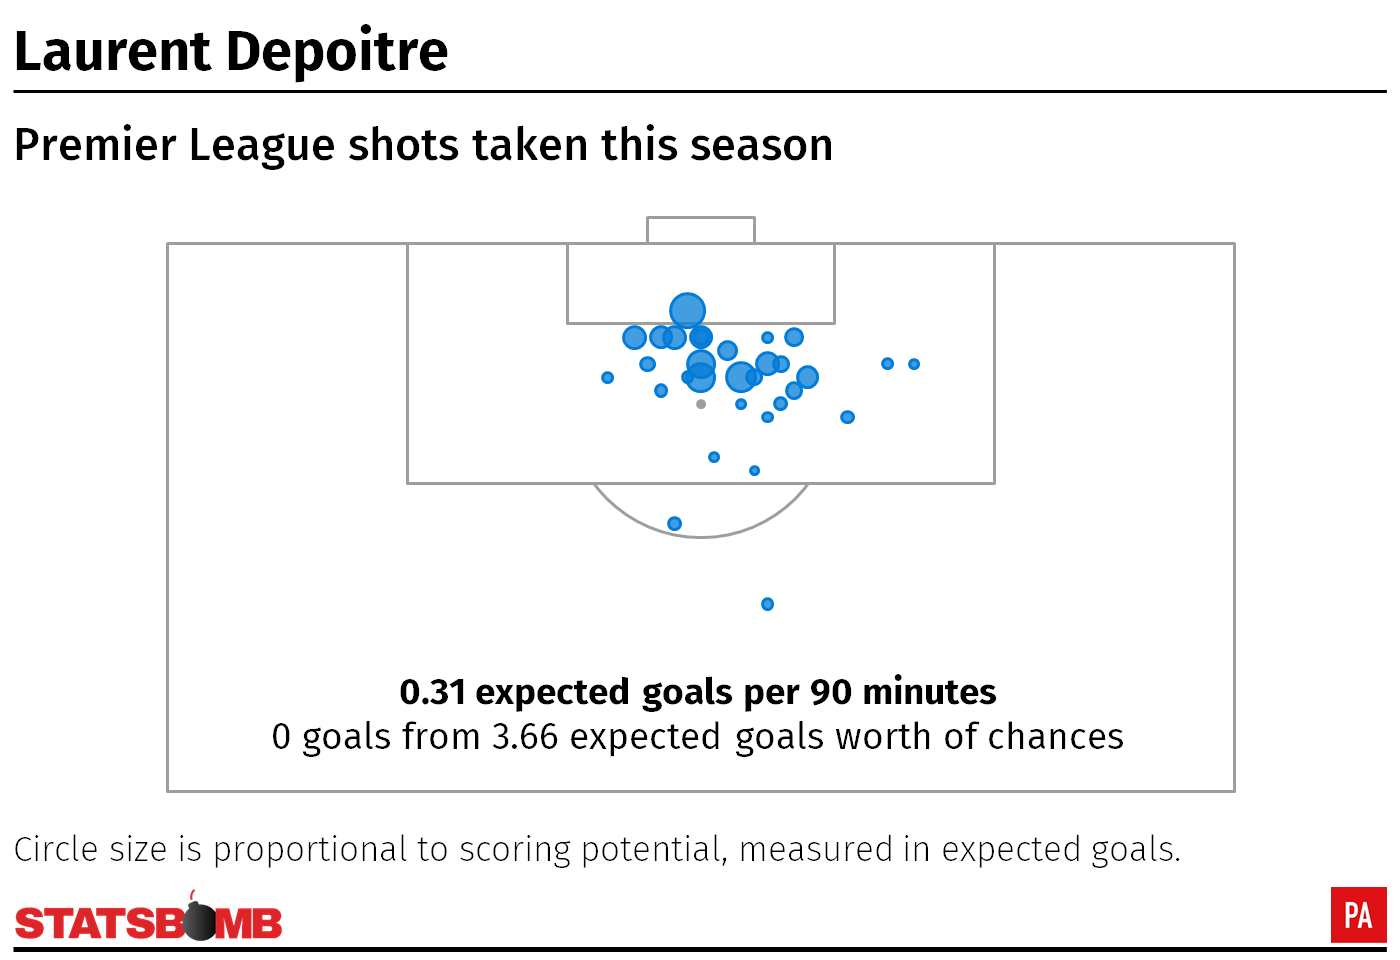 Laurent Depoitre shot map